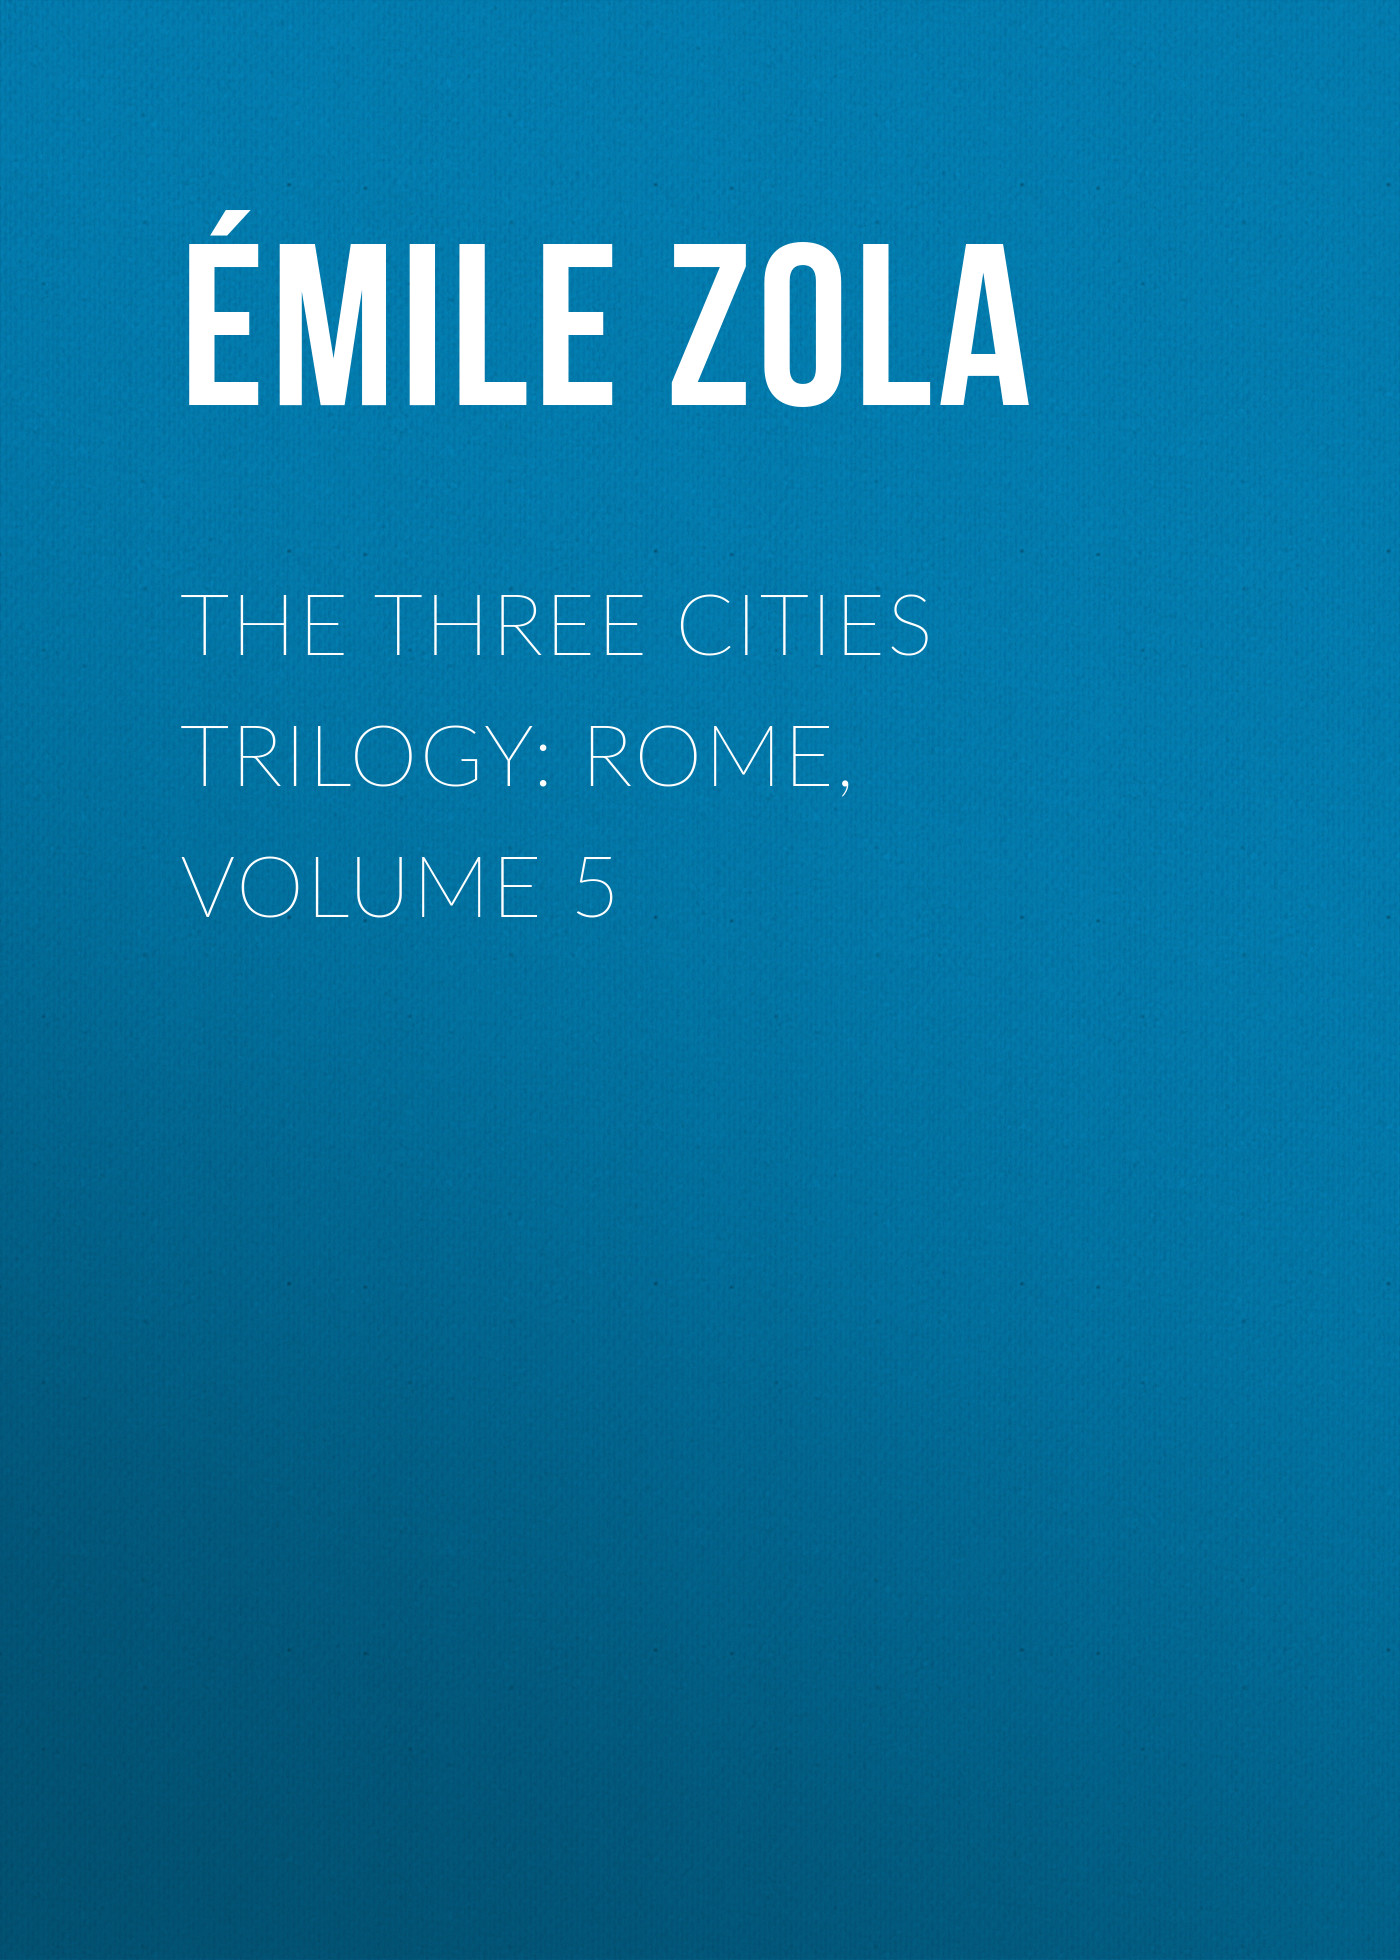 The Three Cities Trilogy: Rome, Volume 5